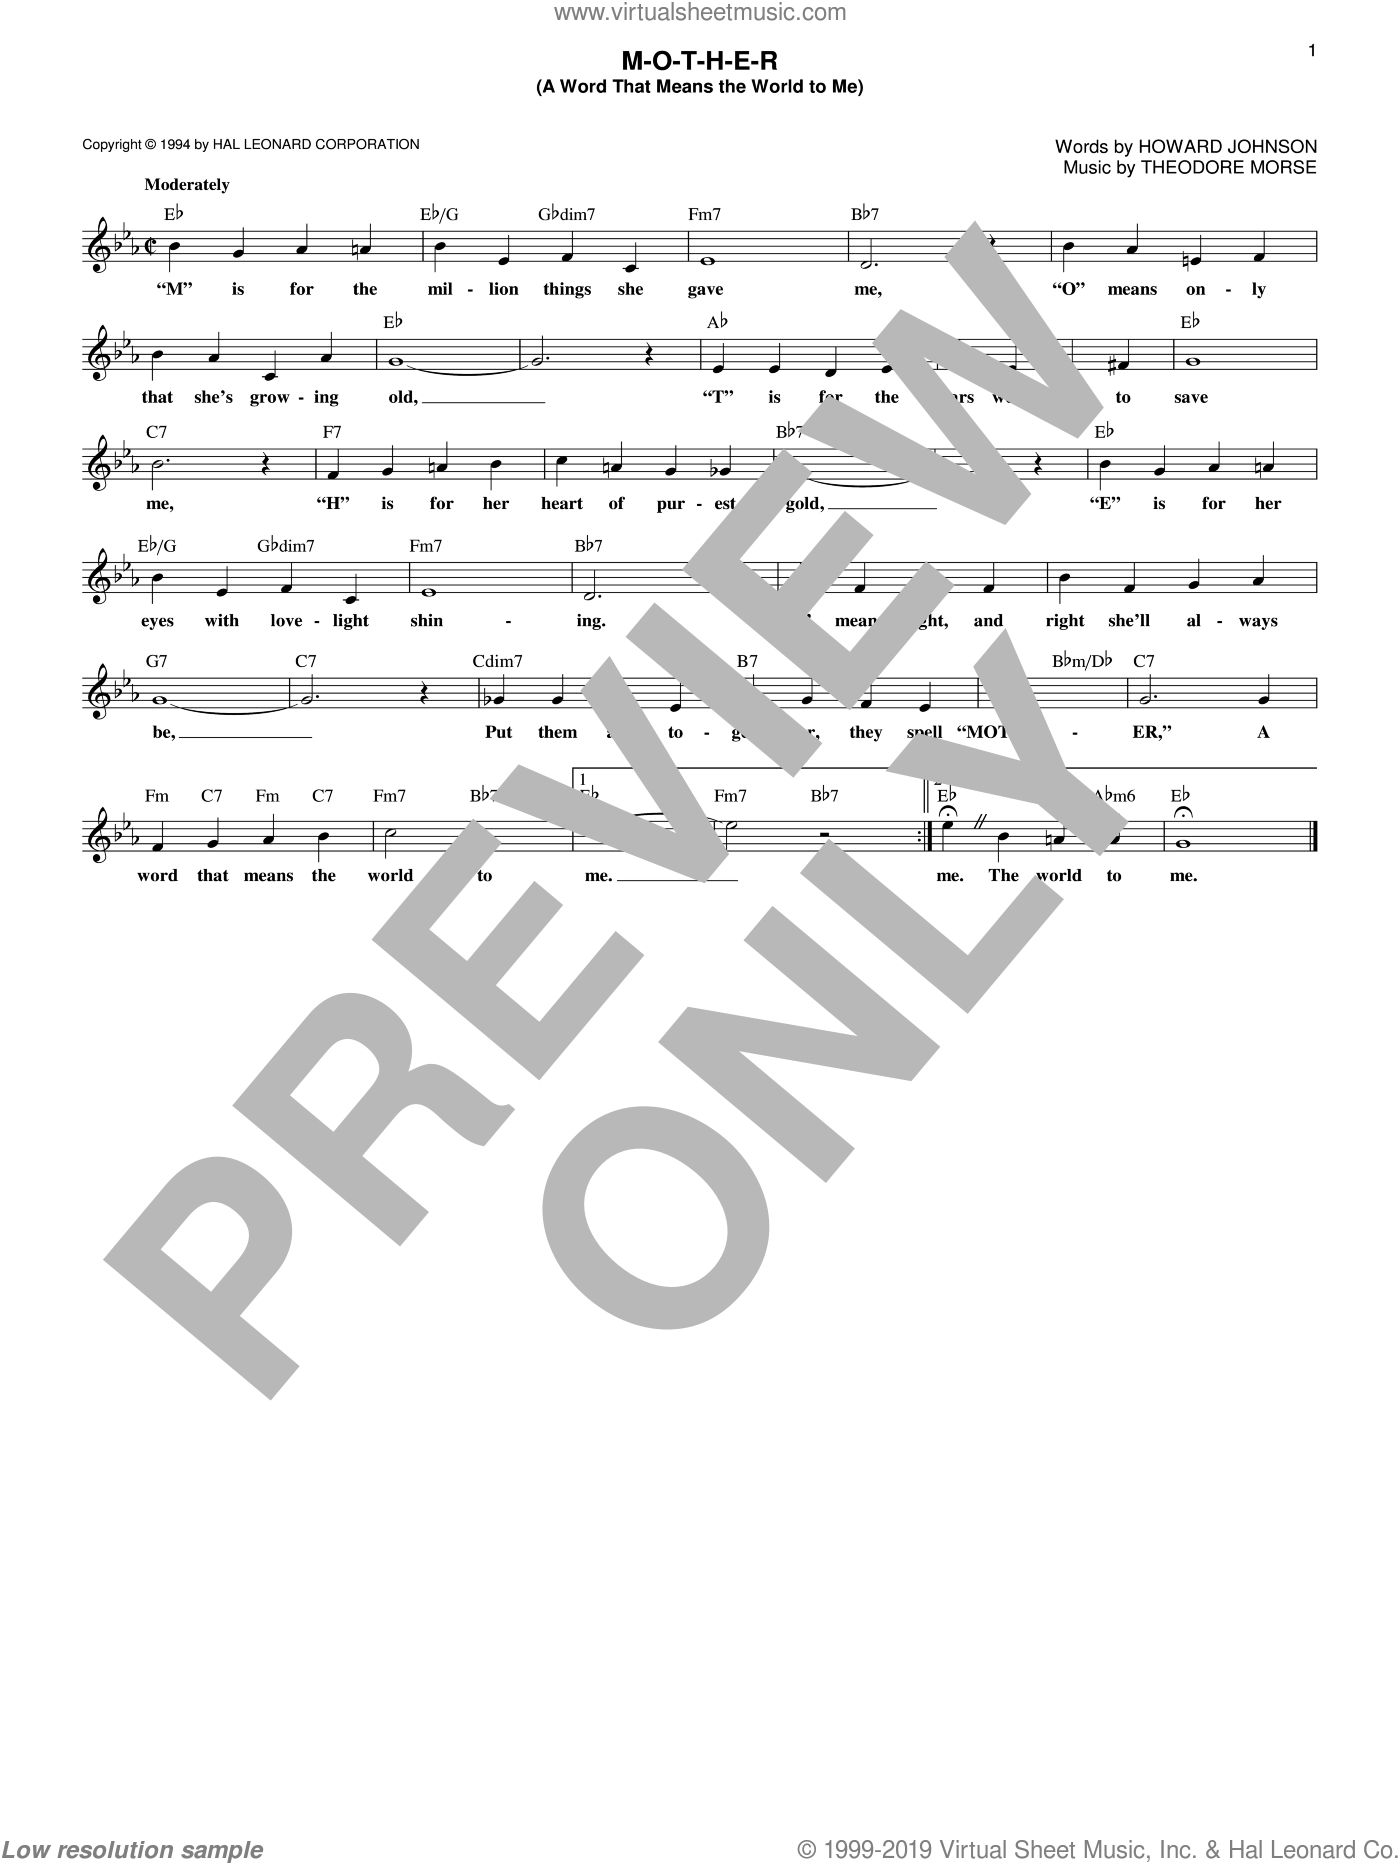 M-O-T-H-E-R (A Word That Means The World To Me) sheet music for voice and other instruments (fake book) by Howard Johnson and Theodore F. Morse. Score Image Preview.